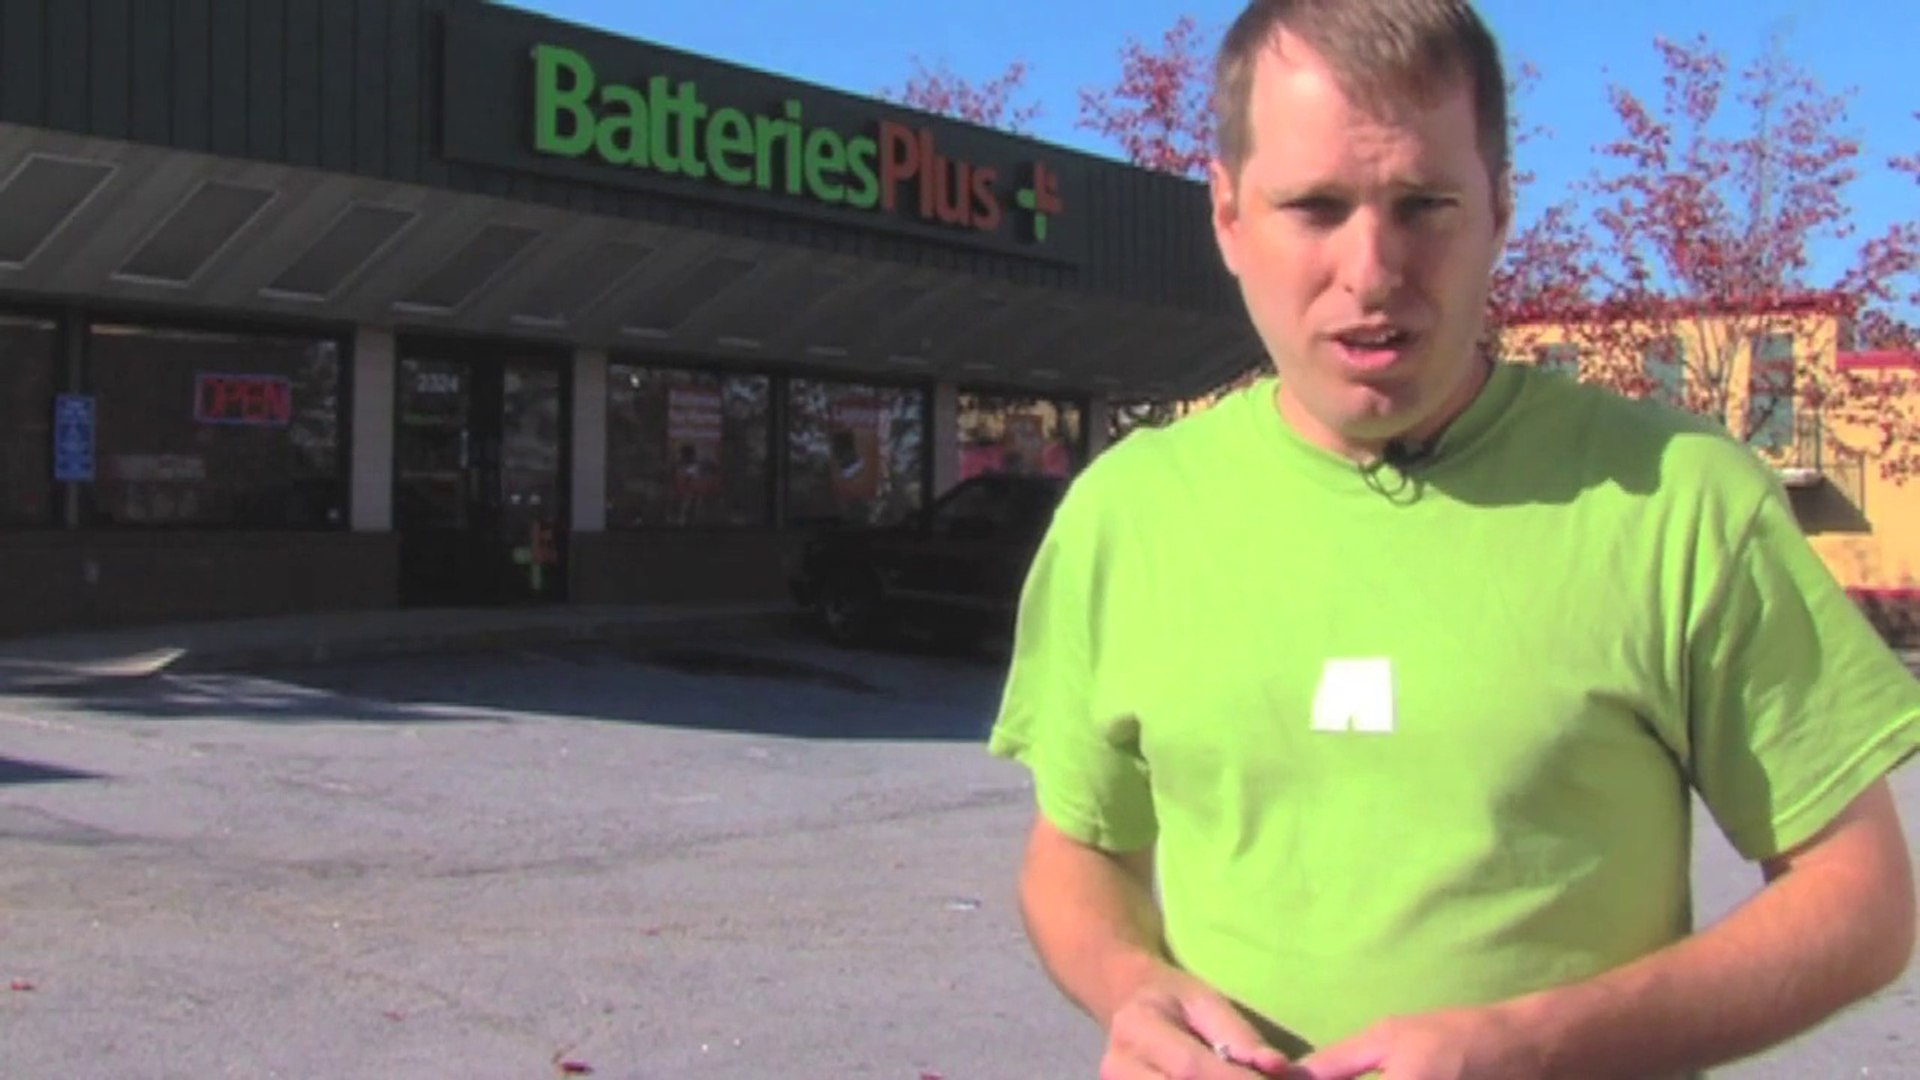 How to properly Recyce and Dispose of Batteries - Batteries Plus Recycling Program in Atlanta Ga